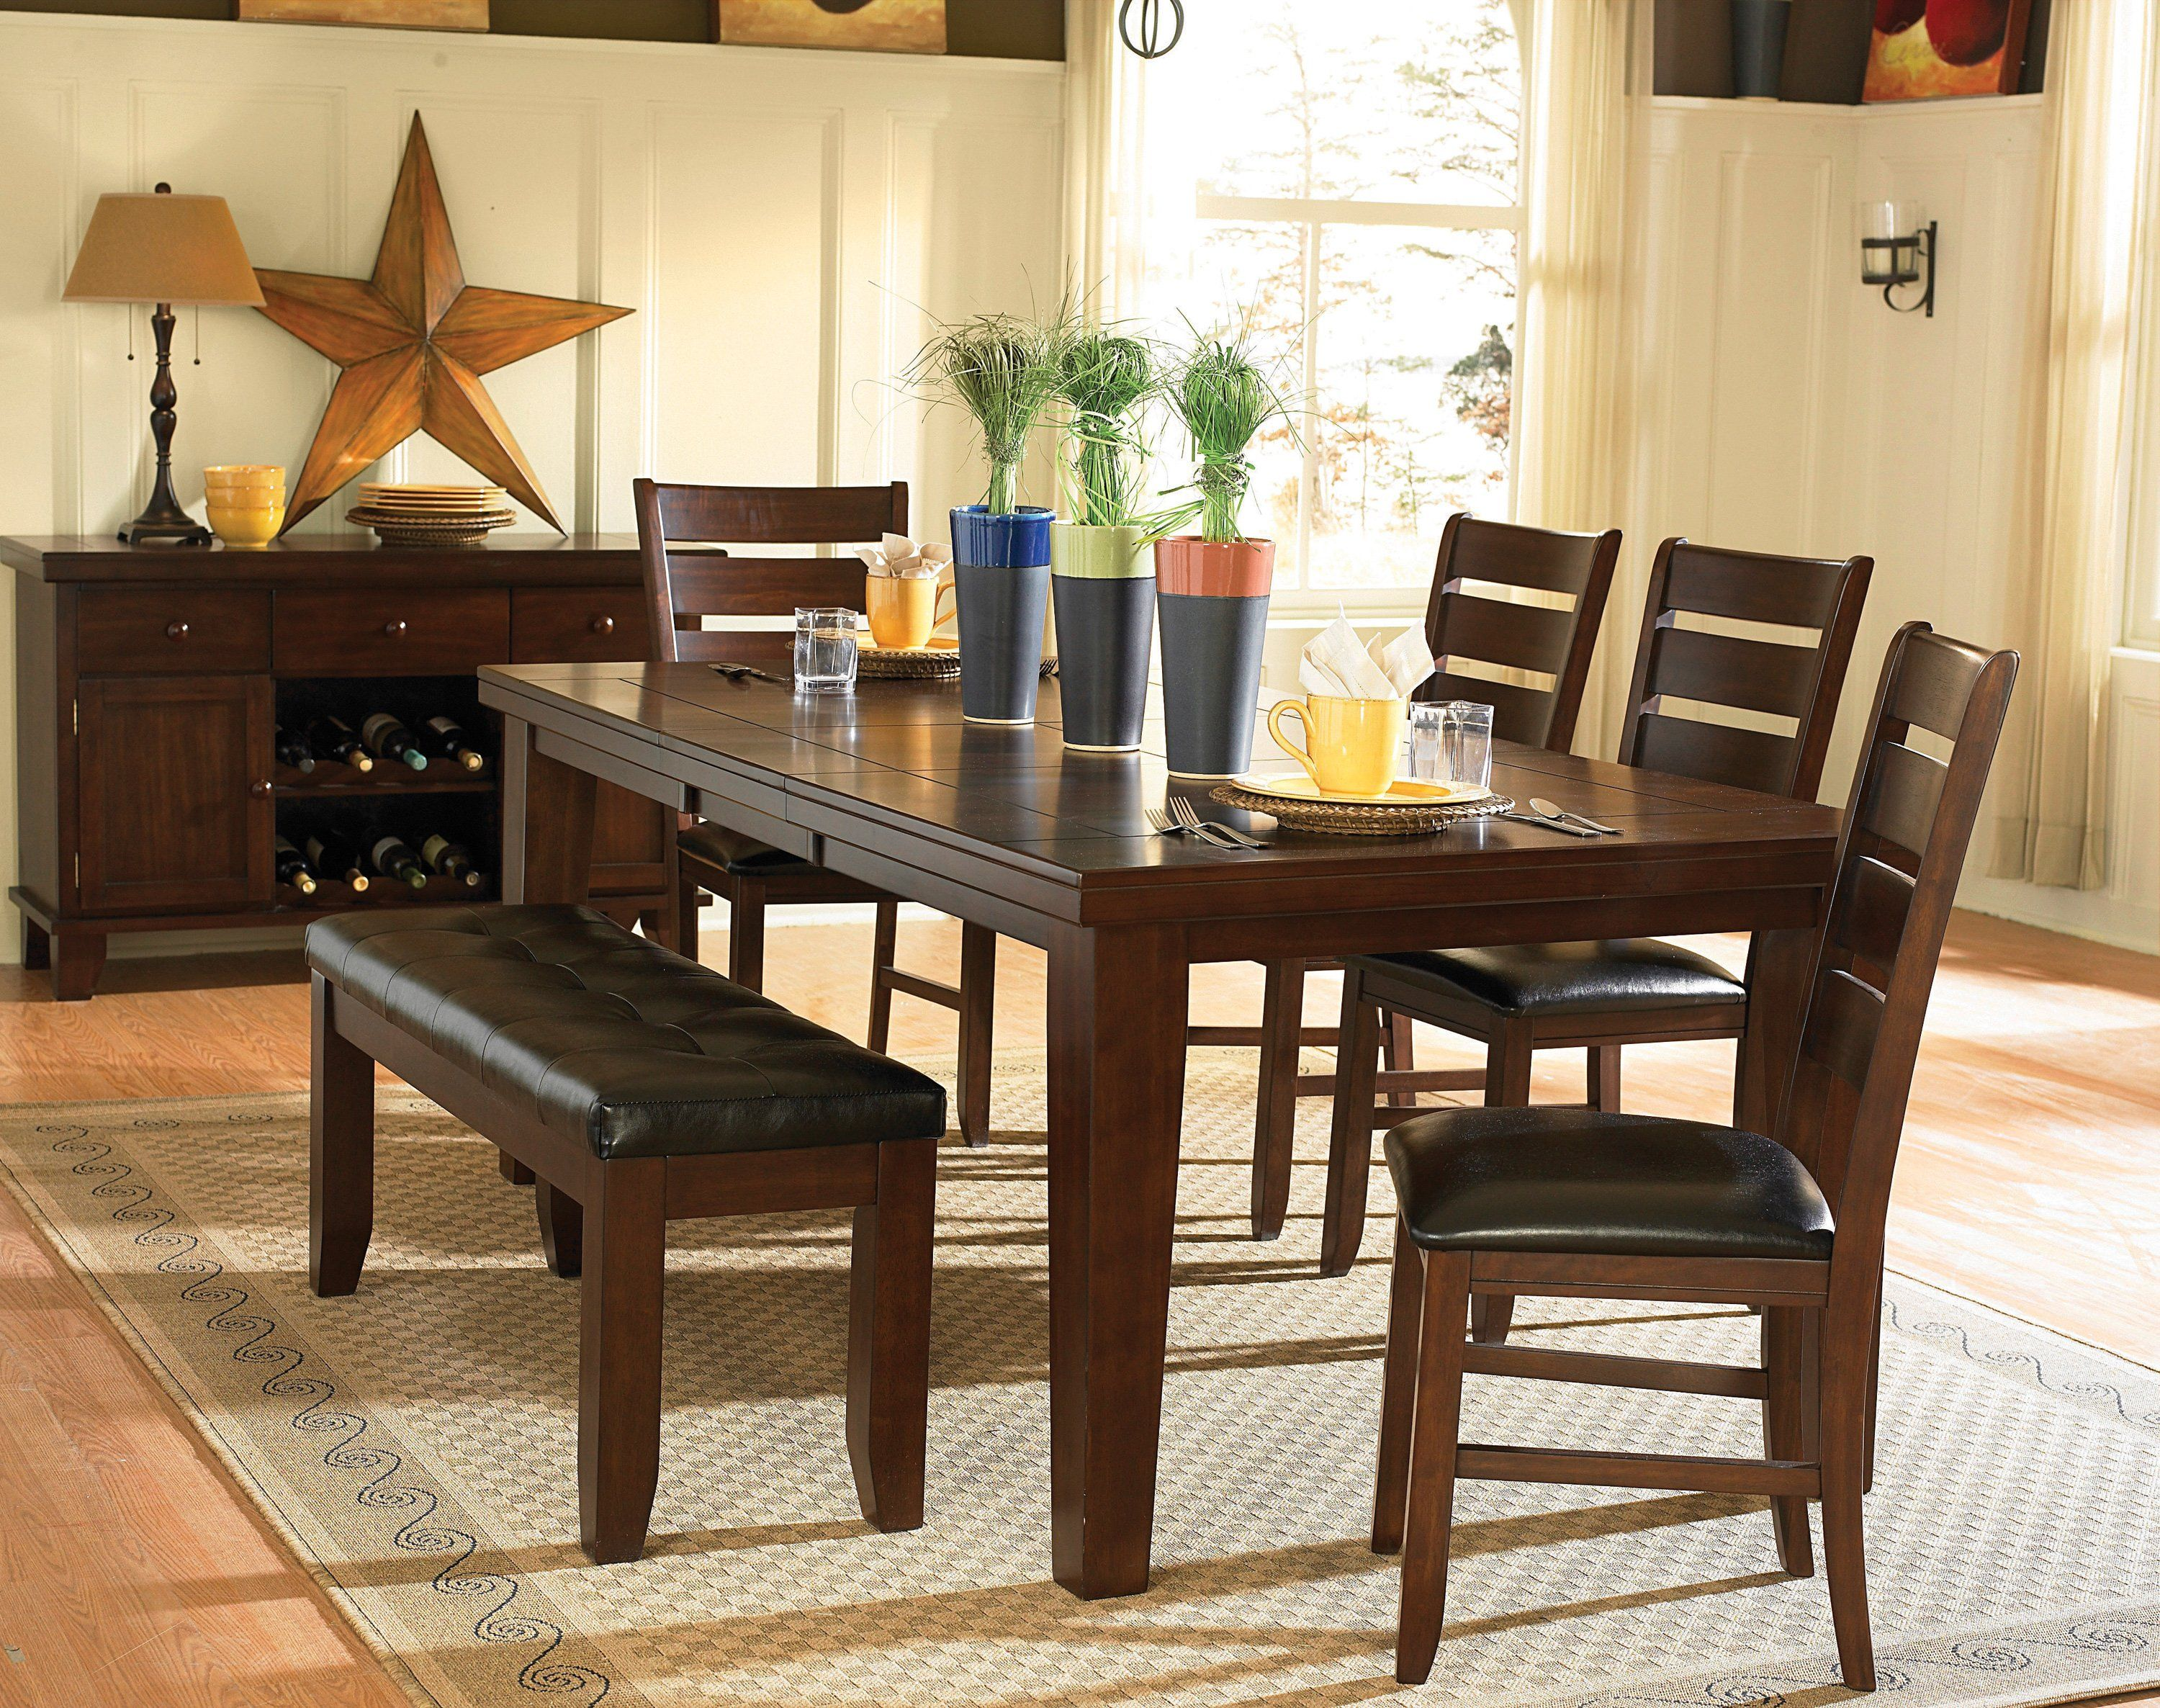 Ameillia 586 82 6pc Dark Oak Wood Leaf Dining Table Set Chairs Bench Small Dining Room Set Dining Room Sets Dining Room Small